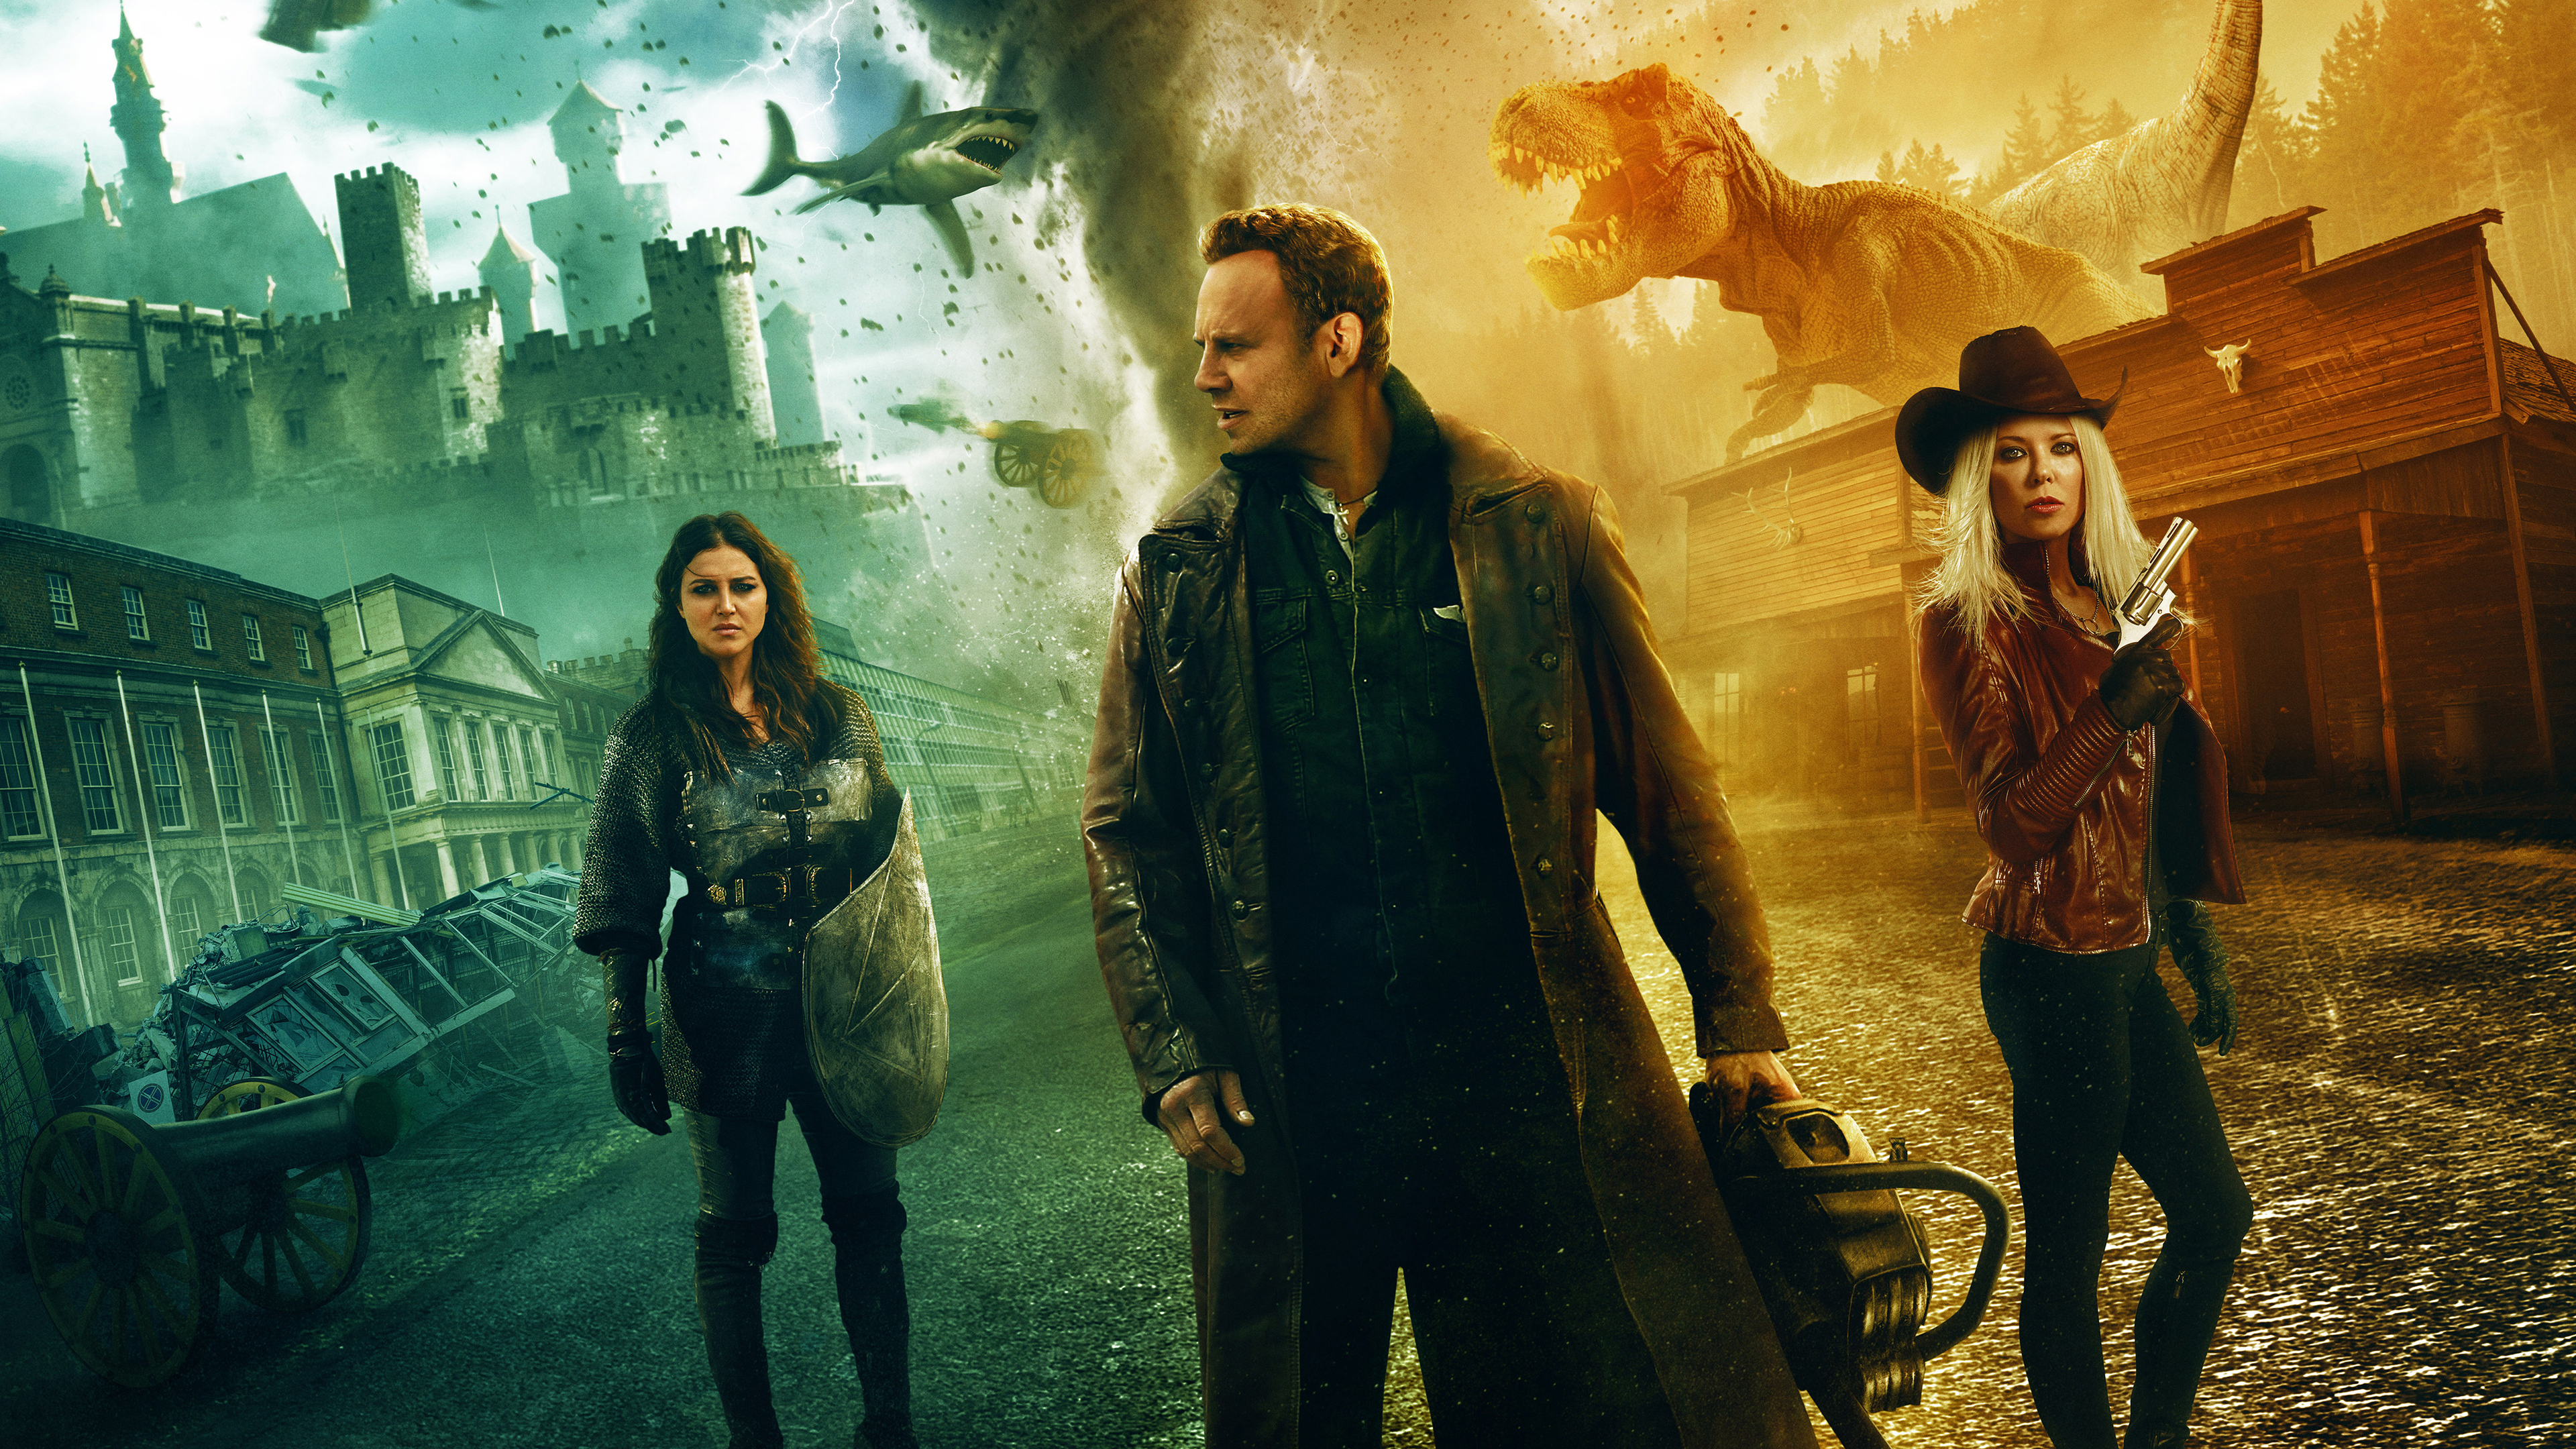 the last sharknado its about time 2018 1539979639 - The Last Sharknado Its About Time 2018 - the last sharknado its about time wallpapers, movies wallpapers, hd-wallpapers, 4k-wallpapers, 2018-movies-wallpapers